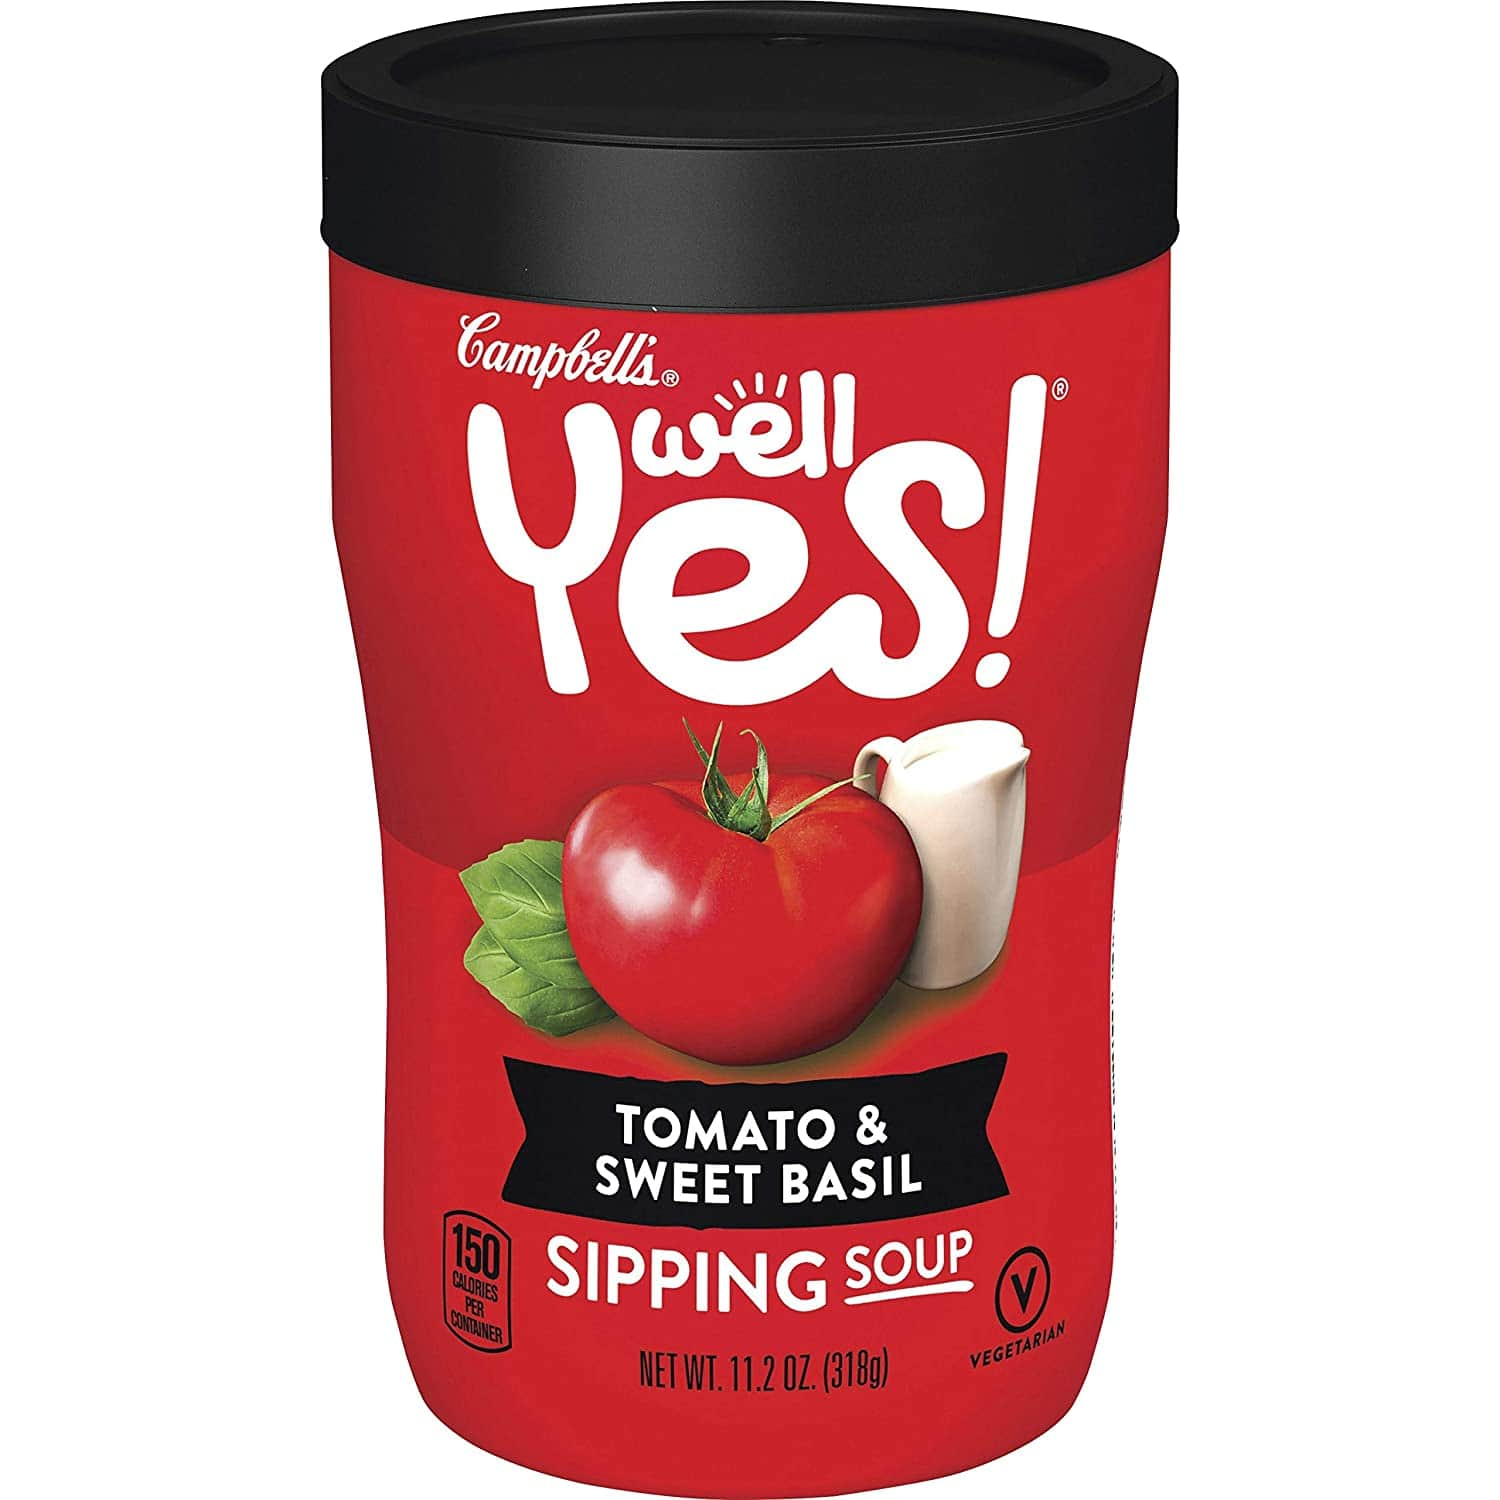 8-Pack 11-Oz Campbell's Well Yes! Tomato & Sweet Basil Sipping Soup